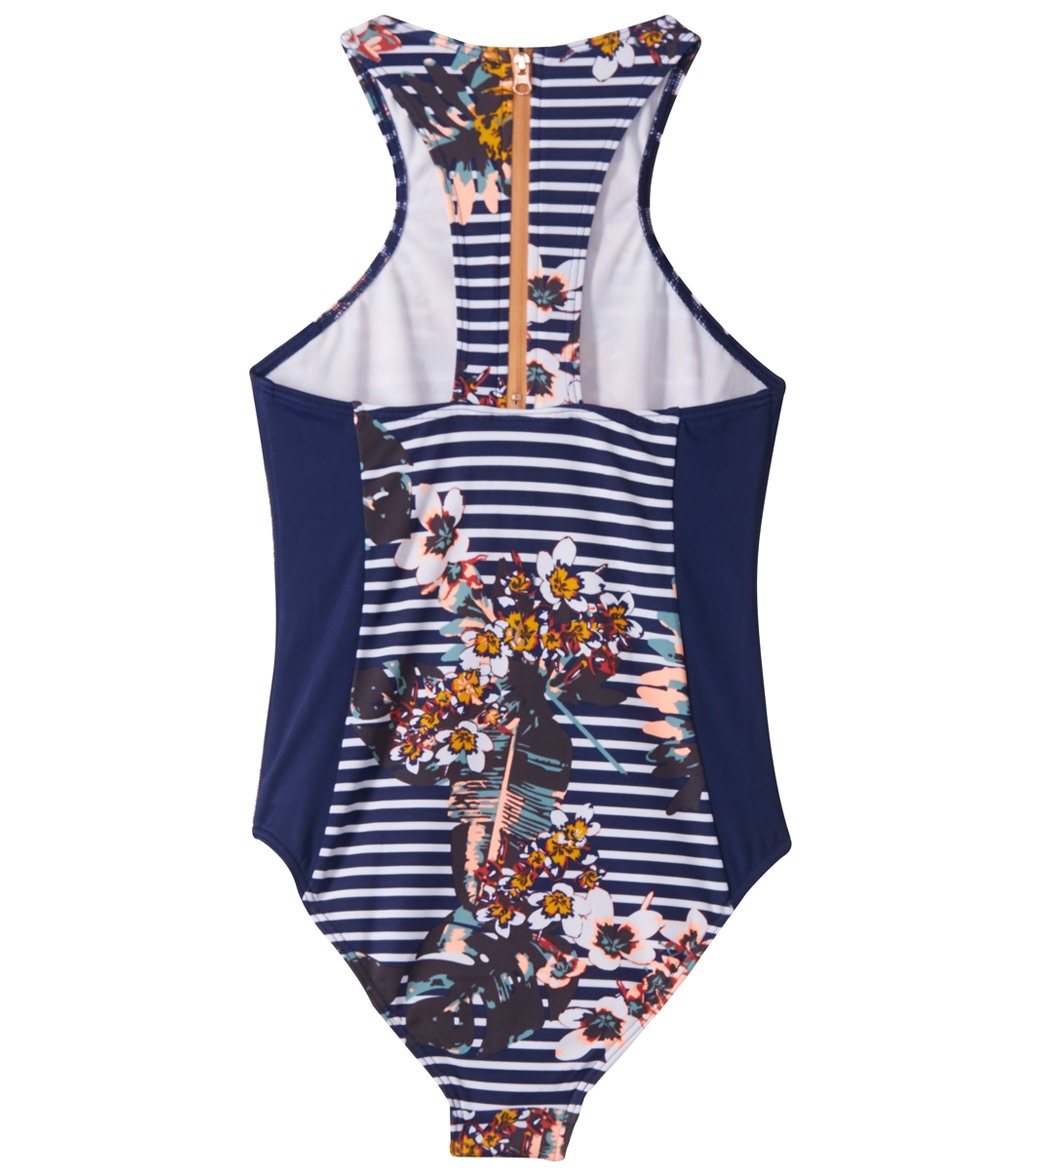 d7673cf393b57 Roxy Girls  Keep in Flow One Piece Swimsuit (Big Kid) at SwimOutlet ...